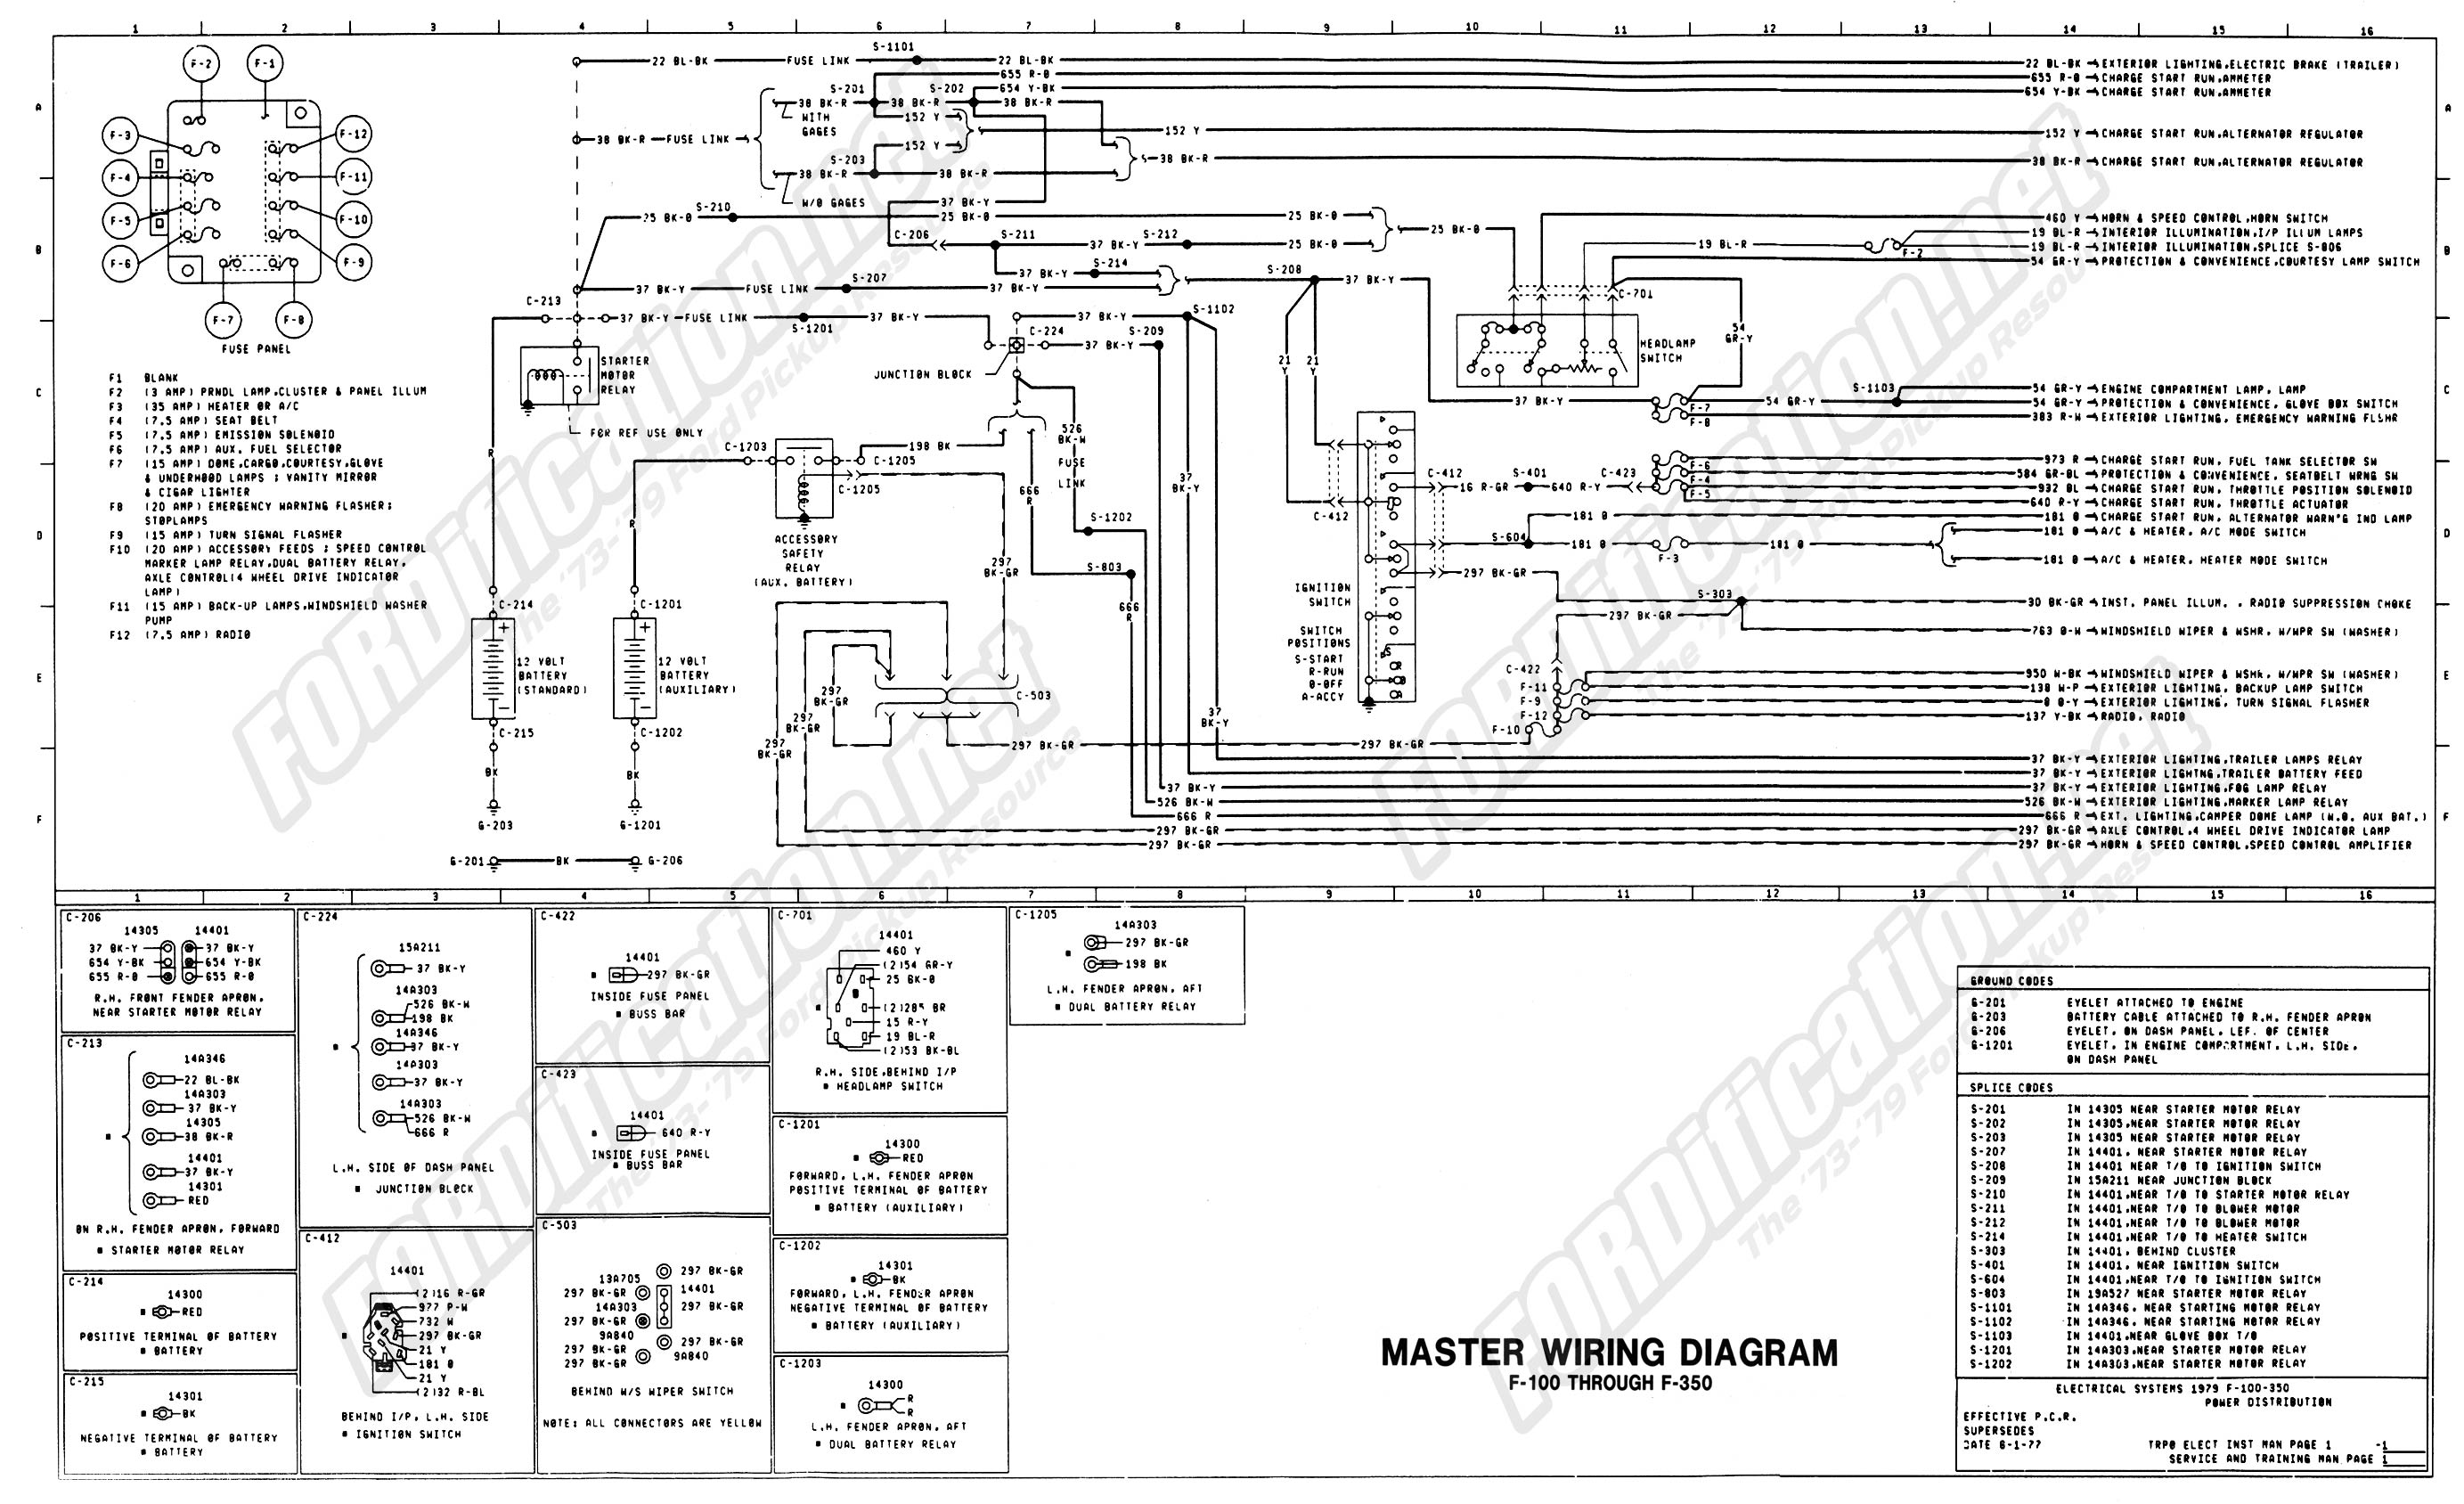 76 Ford Truck Wiring Diagram Schematics 1965 Rolls Royce Diagrams Schematic 1973 1979 Fordification Net